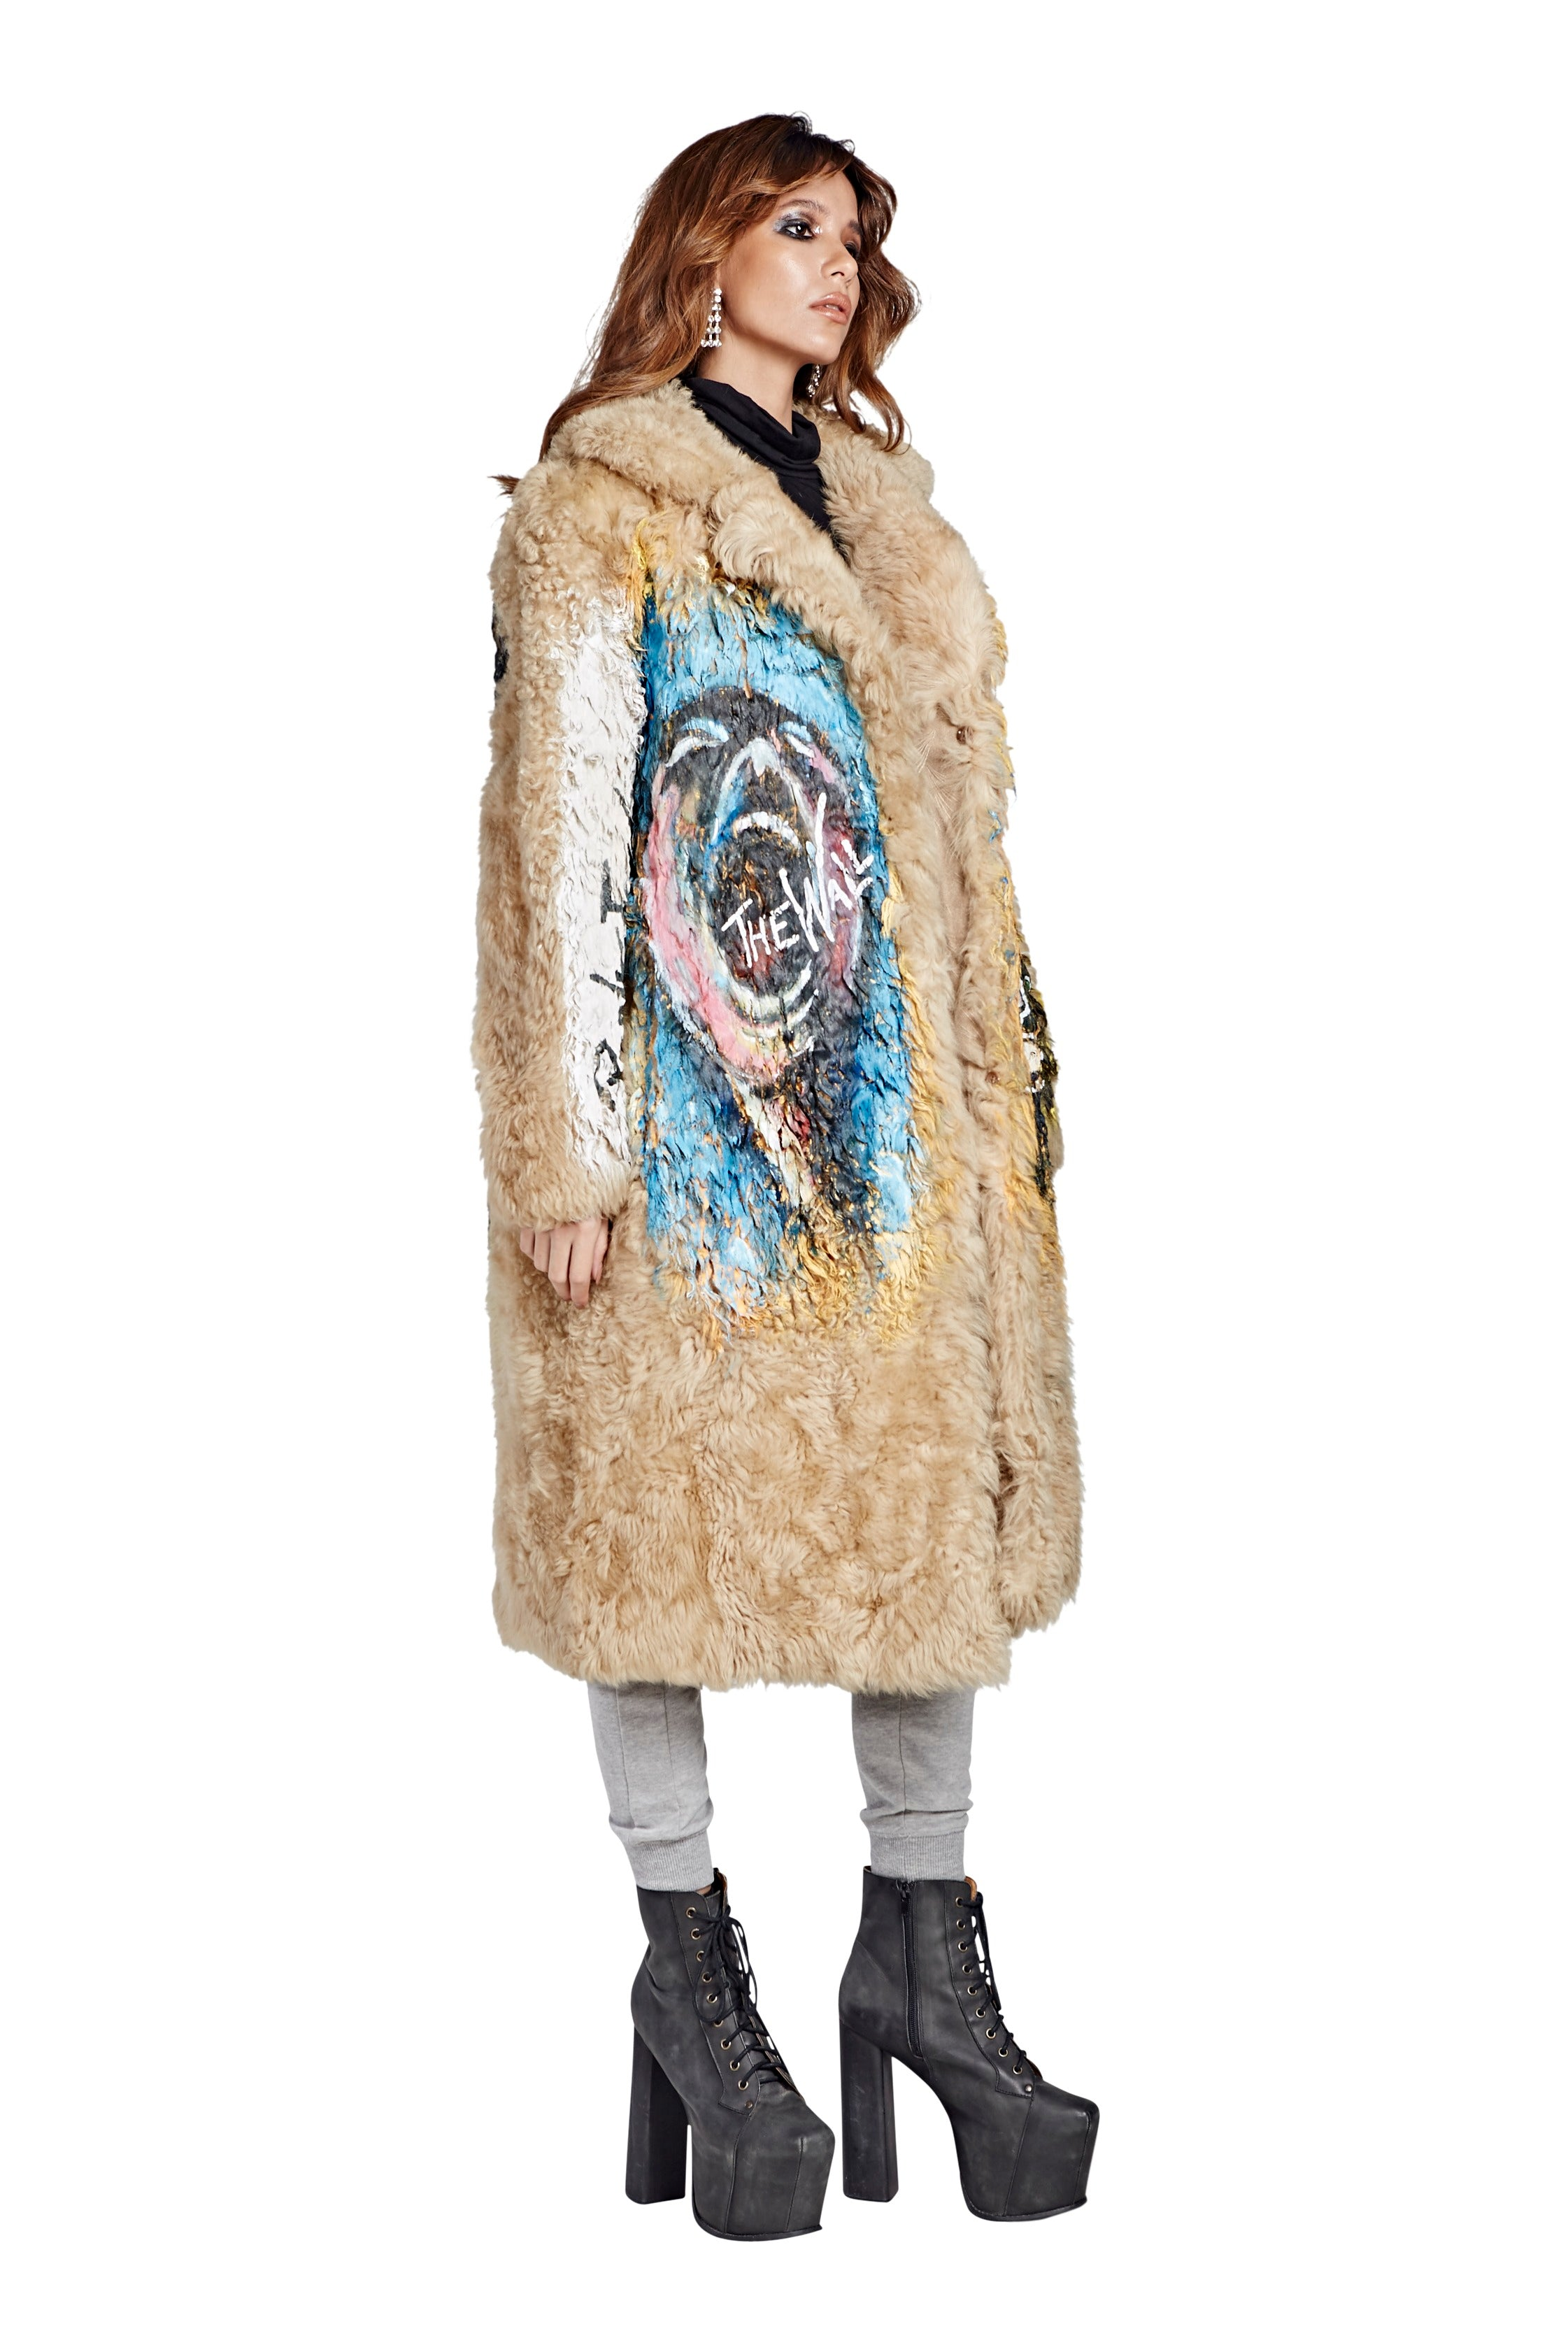 Punk Rock Fur Coat - Long Light Brown 2017